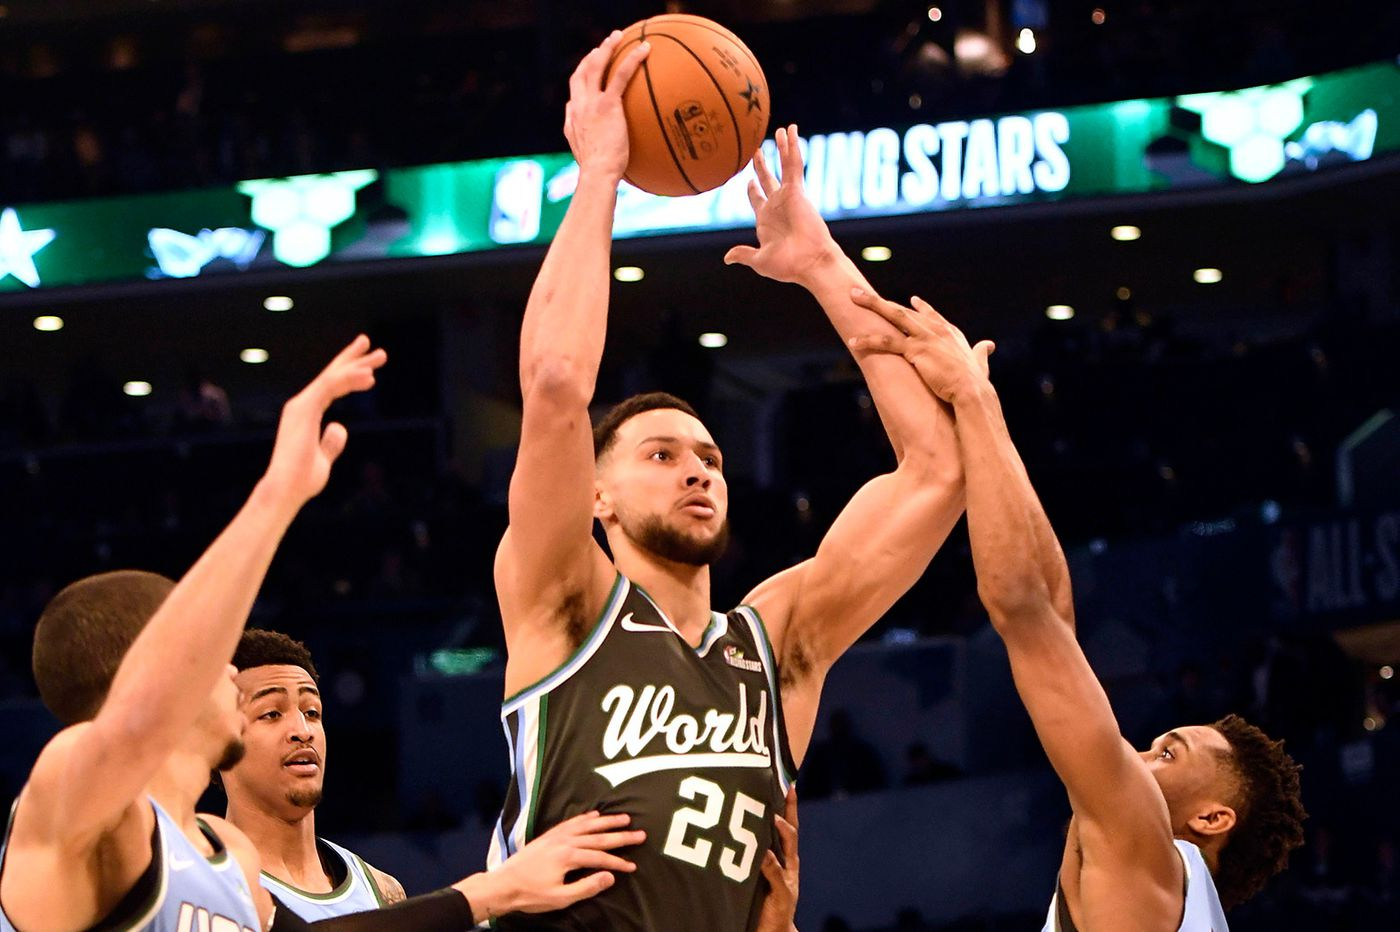 NBA All-Star Game was 'amazing experience' for Sixers' Ben Simmons